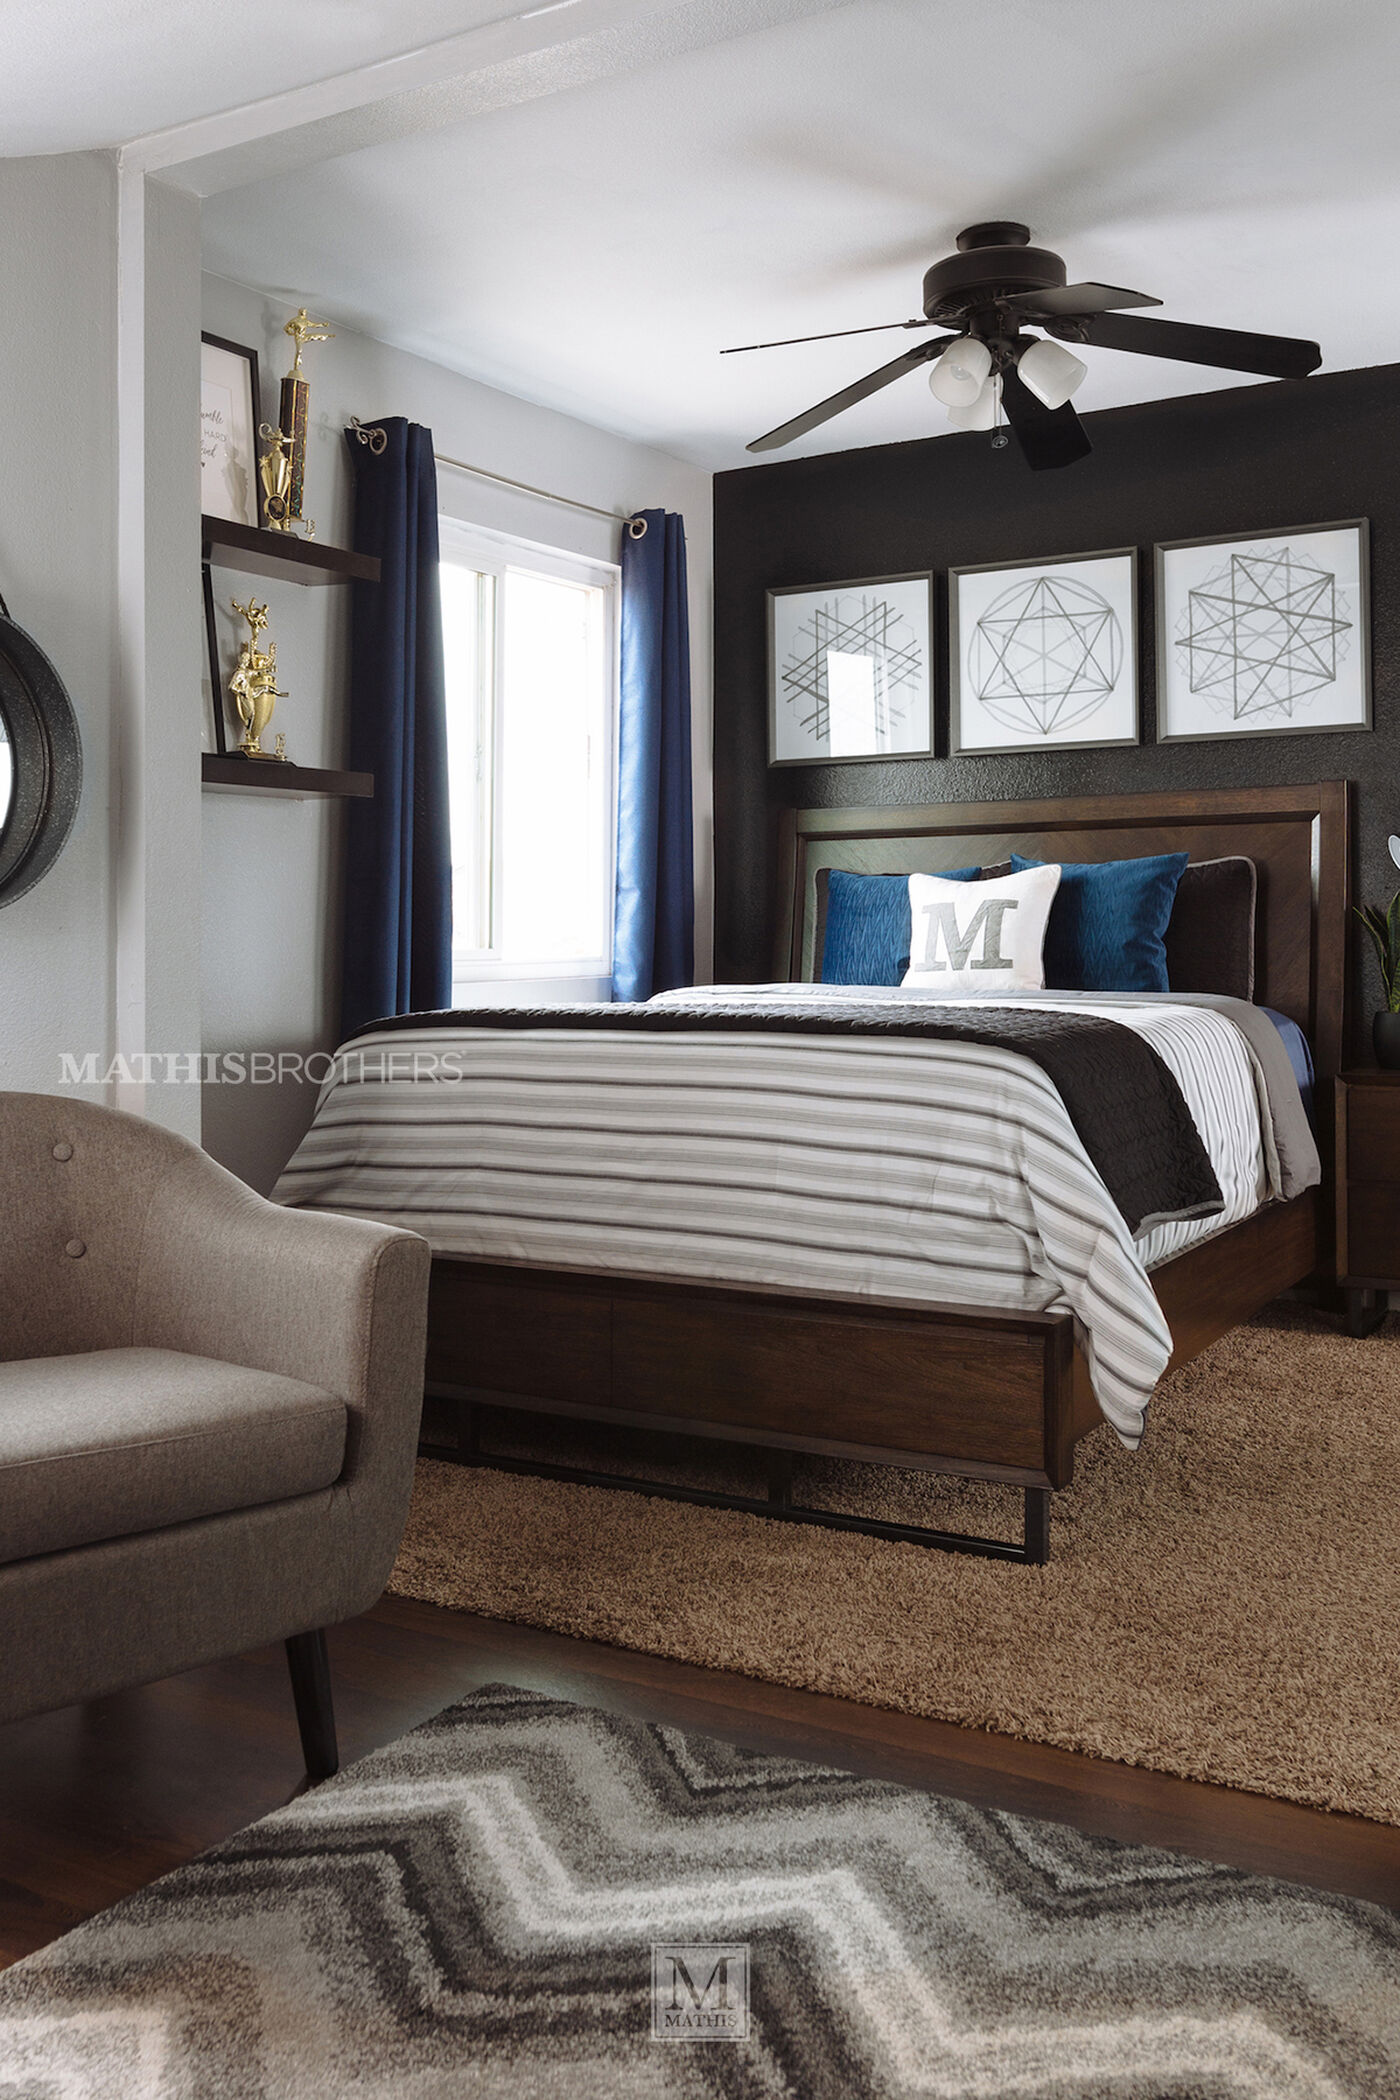 Three-Piece Mid-Century Modern Bedroom Set In Graphite